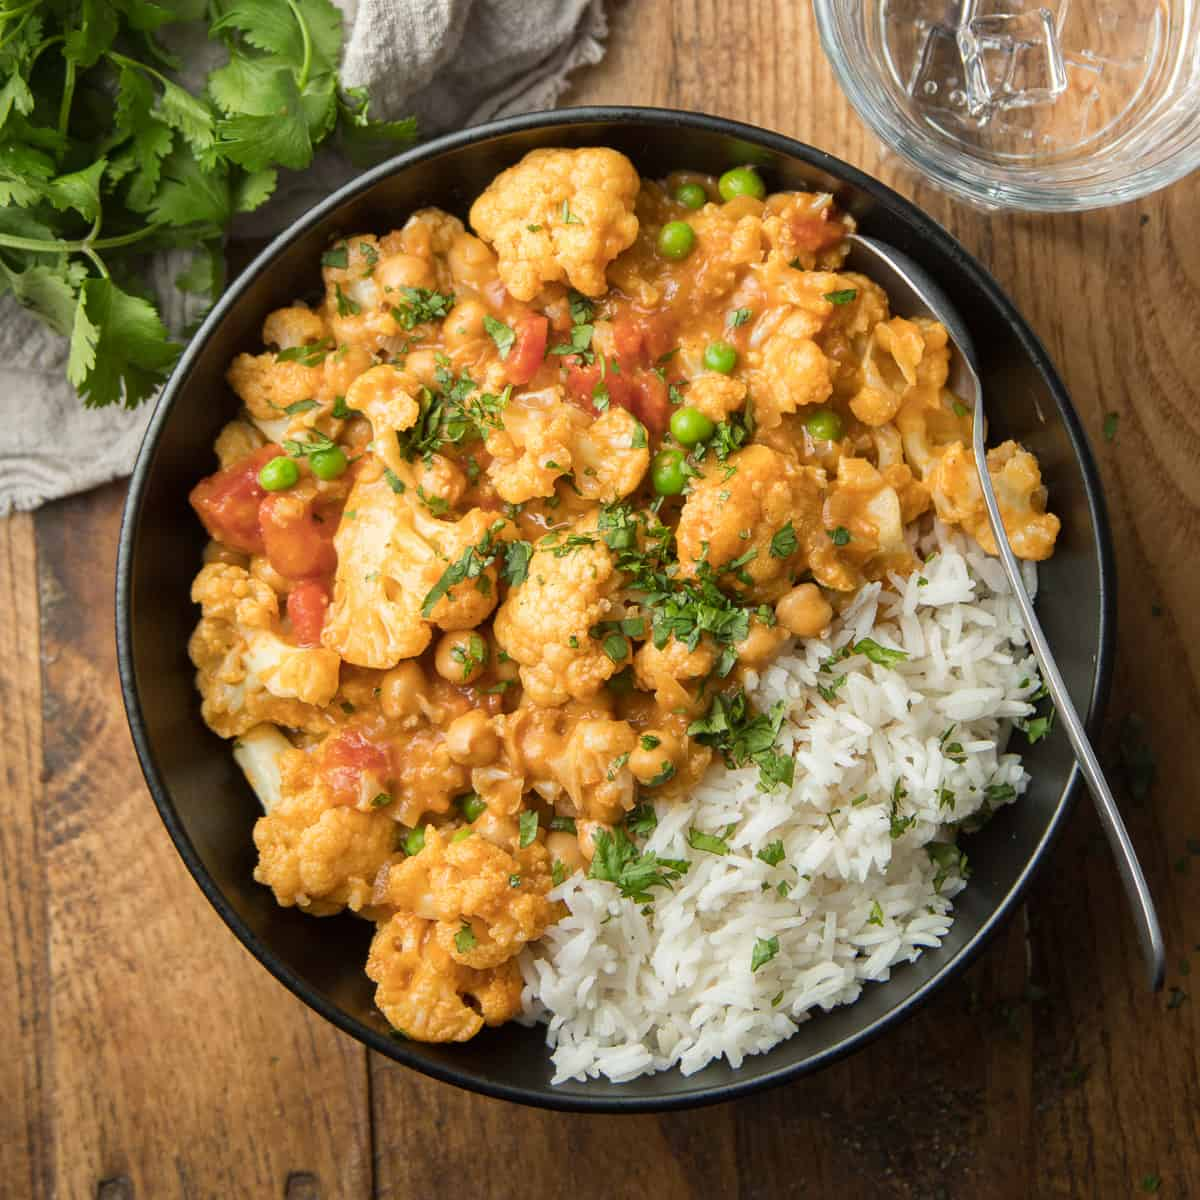 Bowl of Cauliflower Curry and Rice on a Wooden Surface